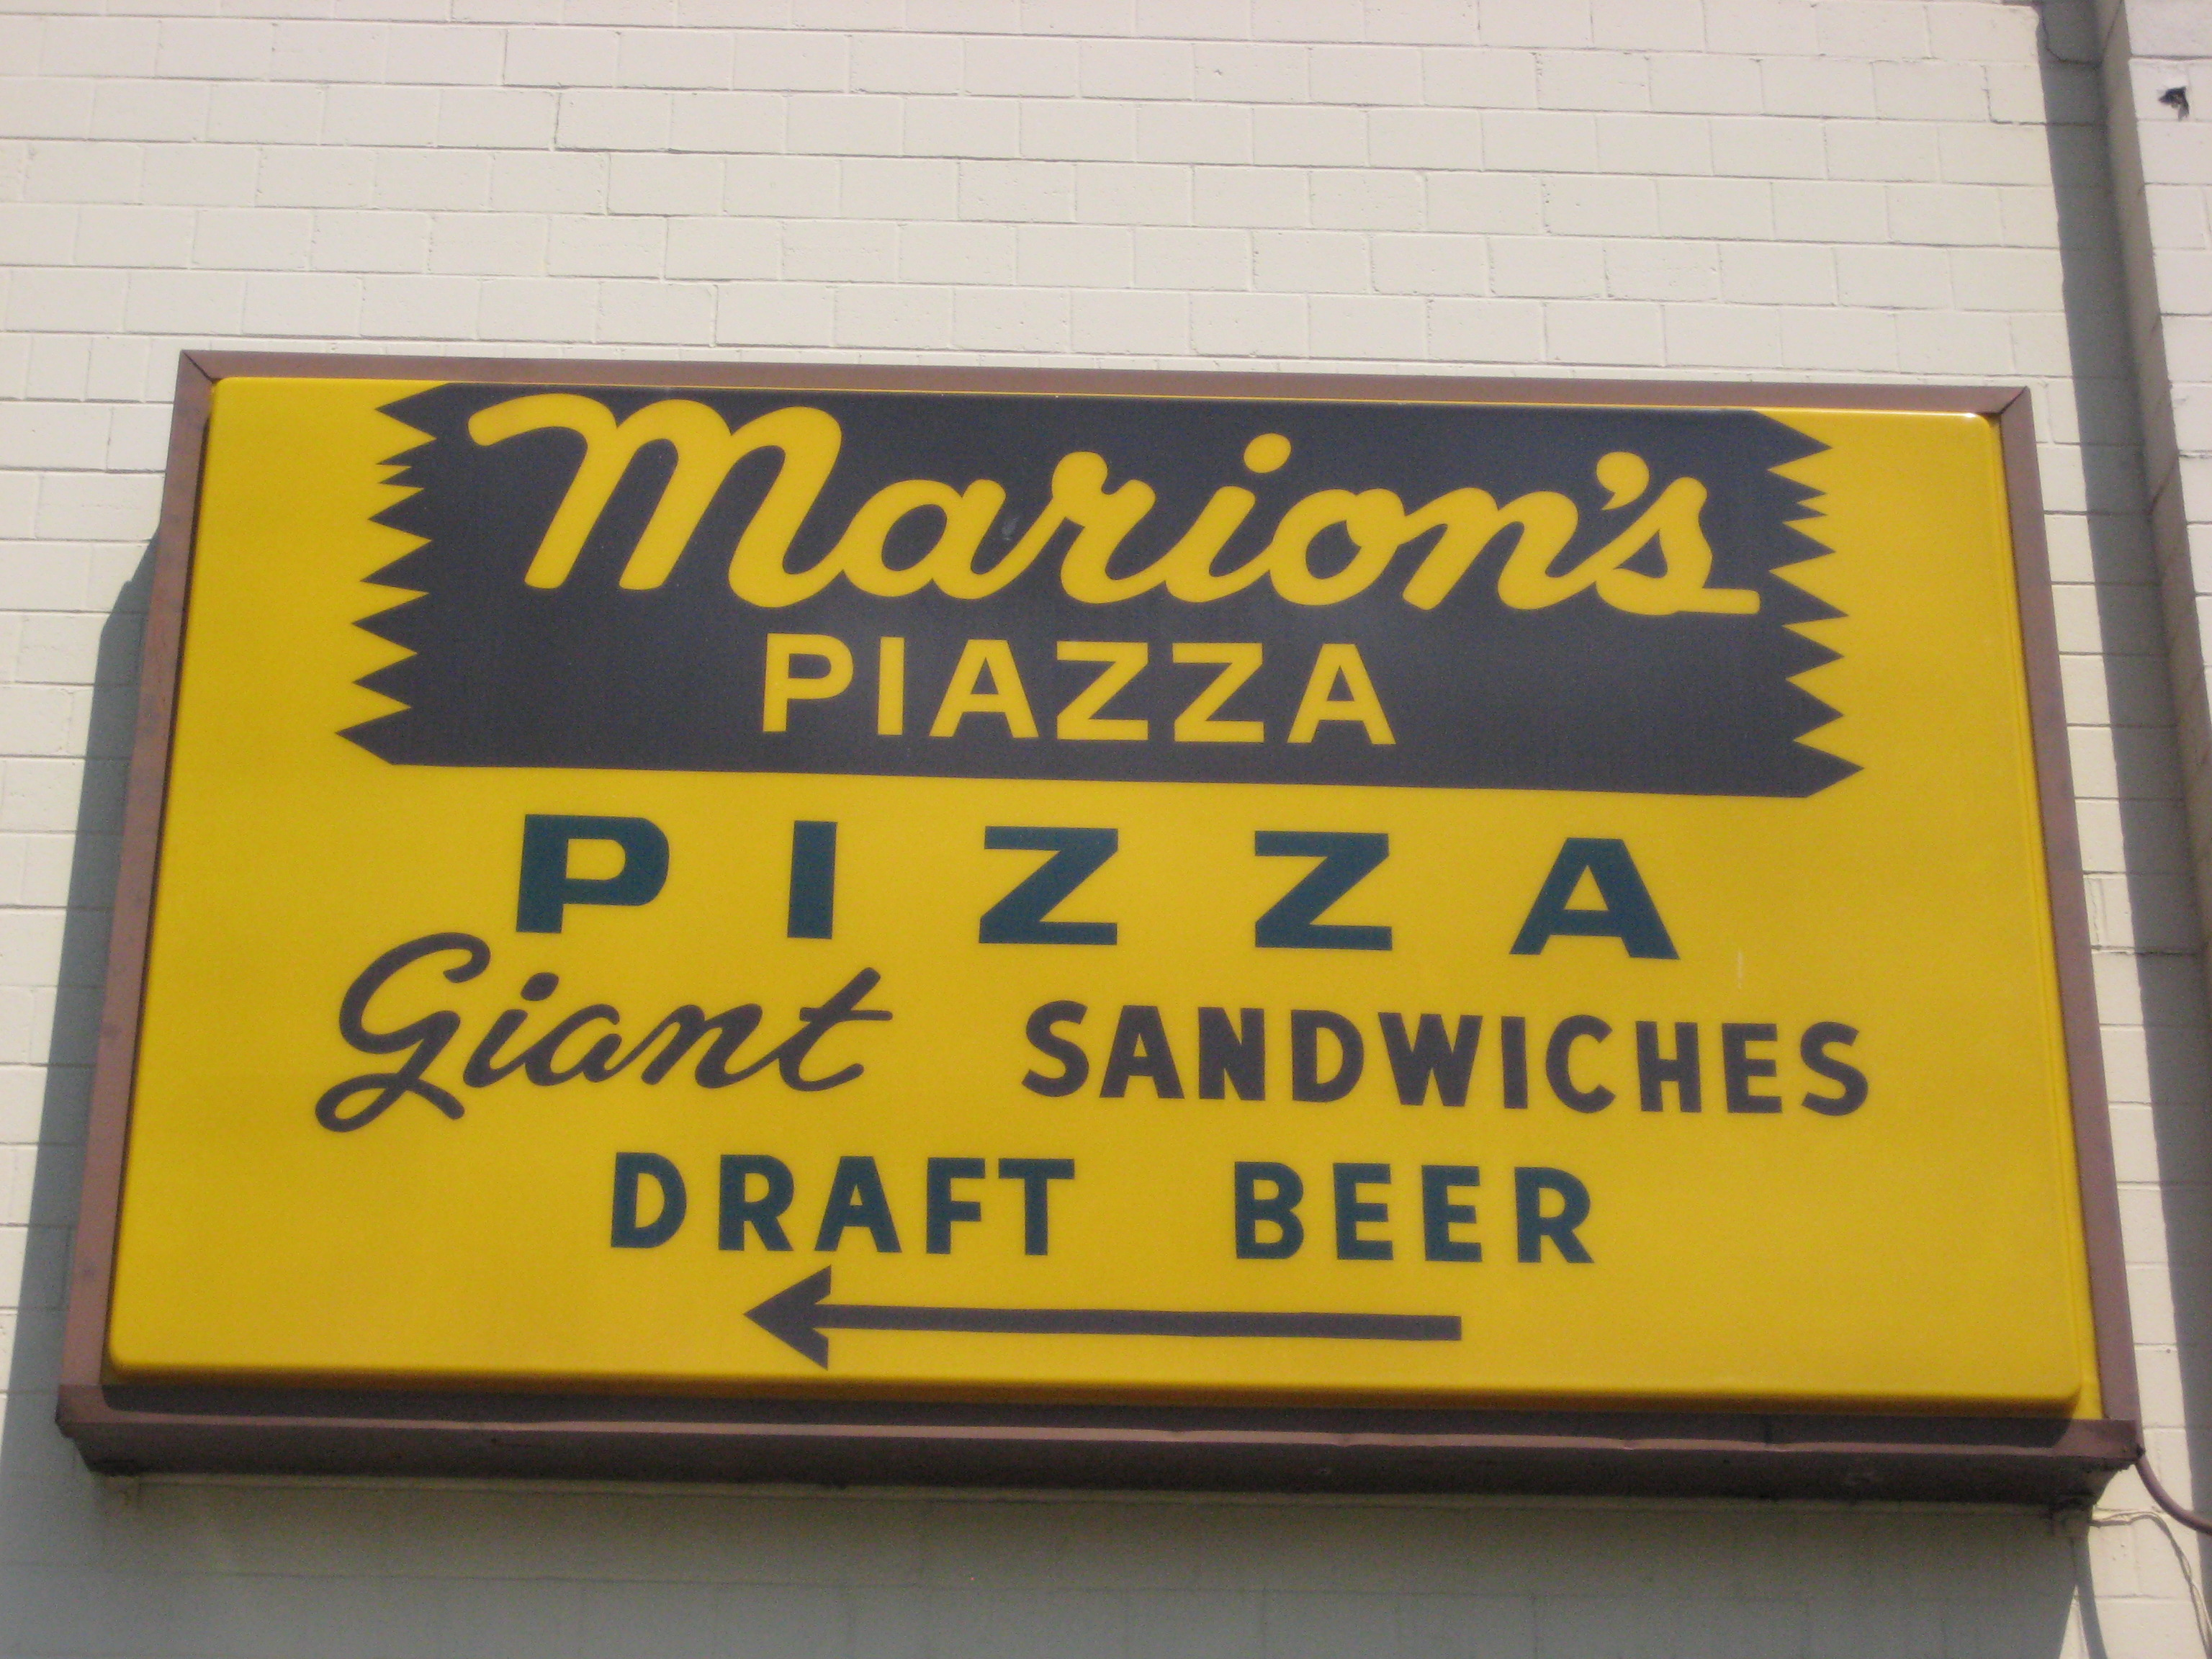 Marion's Piazza - Wikipedia